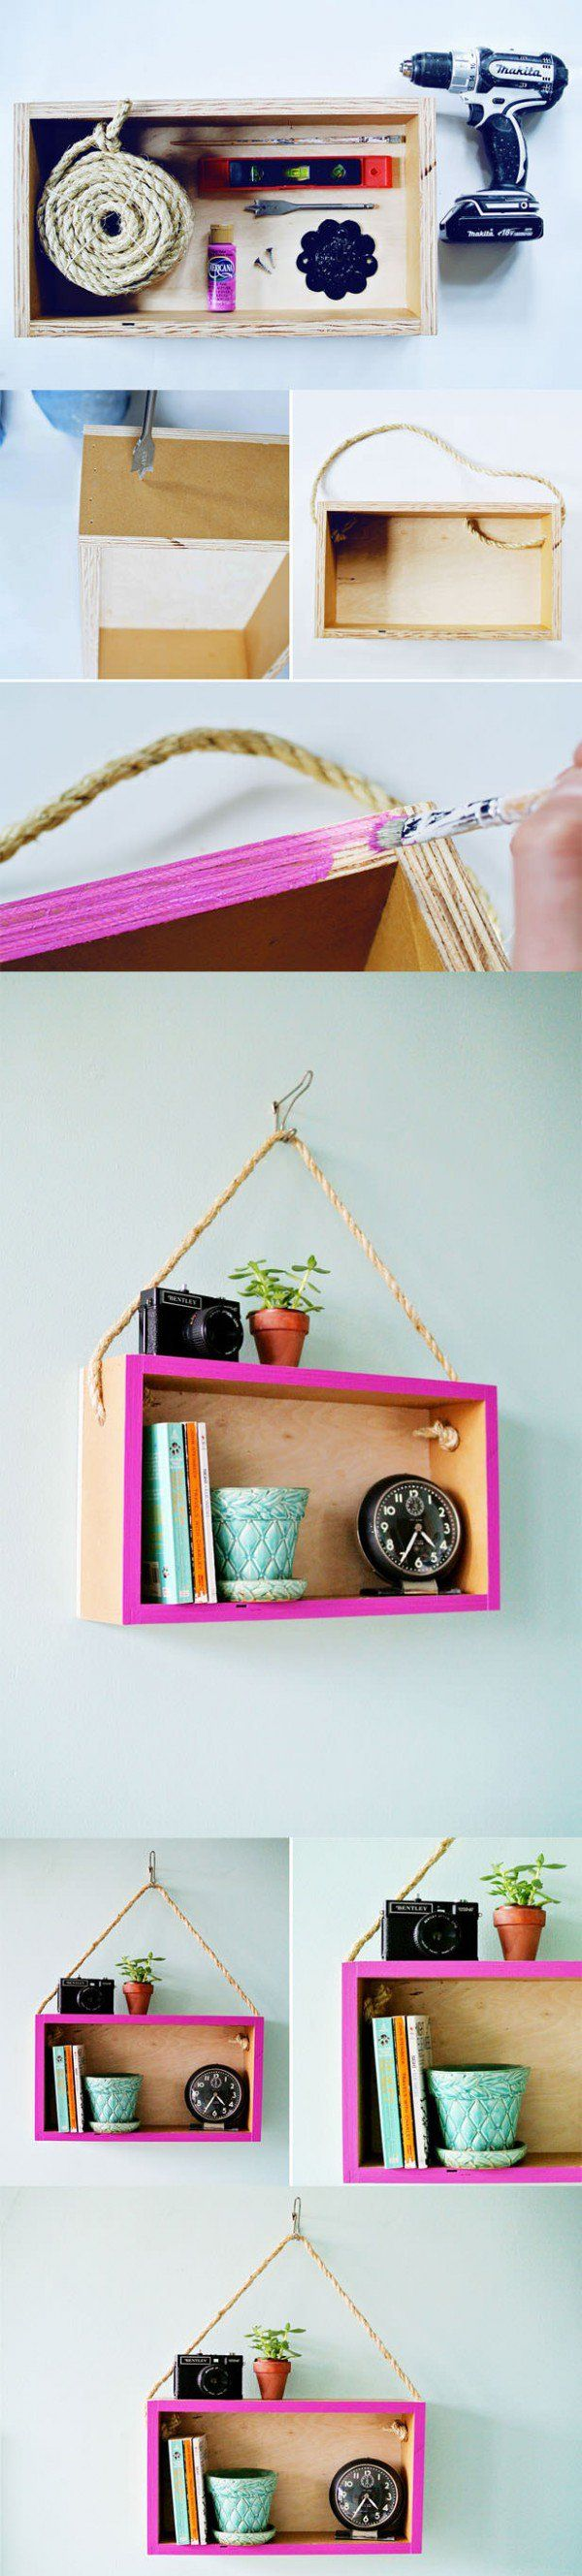 DIY: Upcycled Wooden Box Into Hanging Shelf Do-It-Yourself Ideas